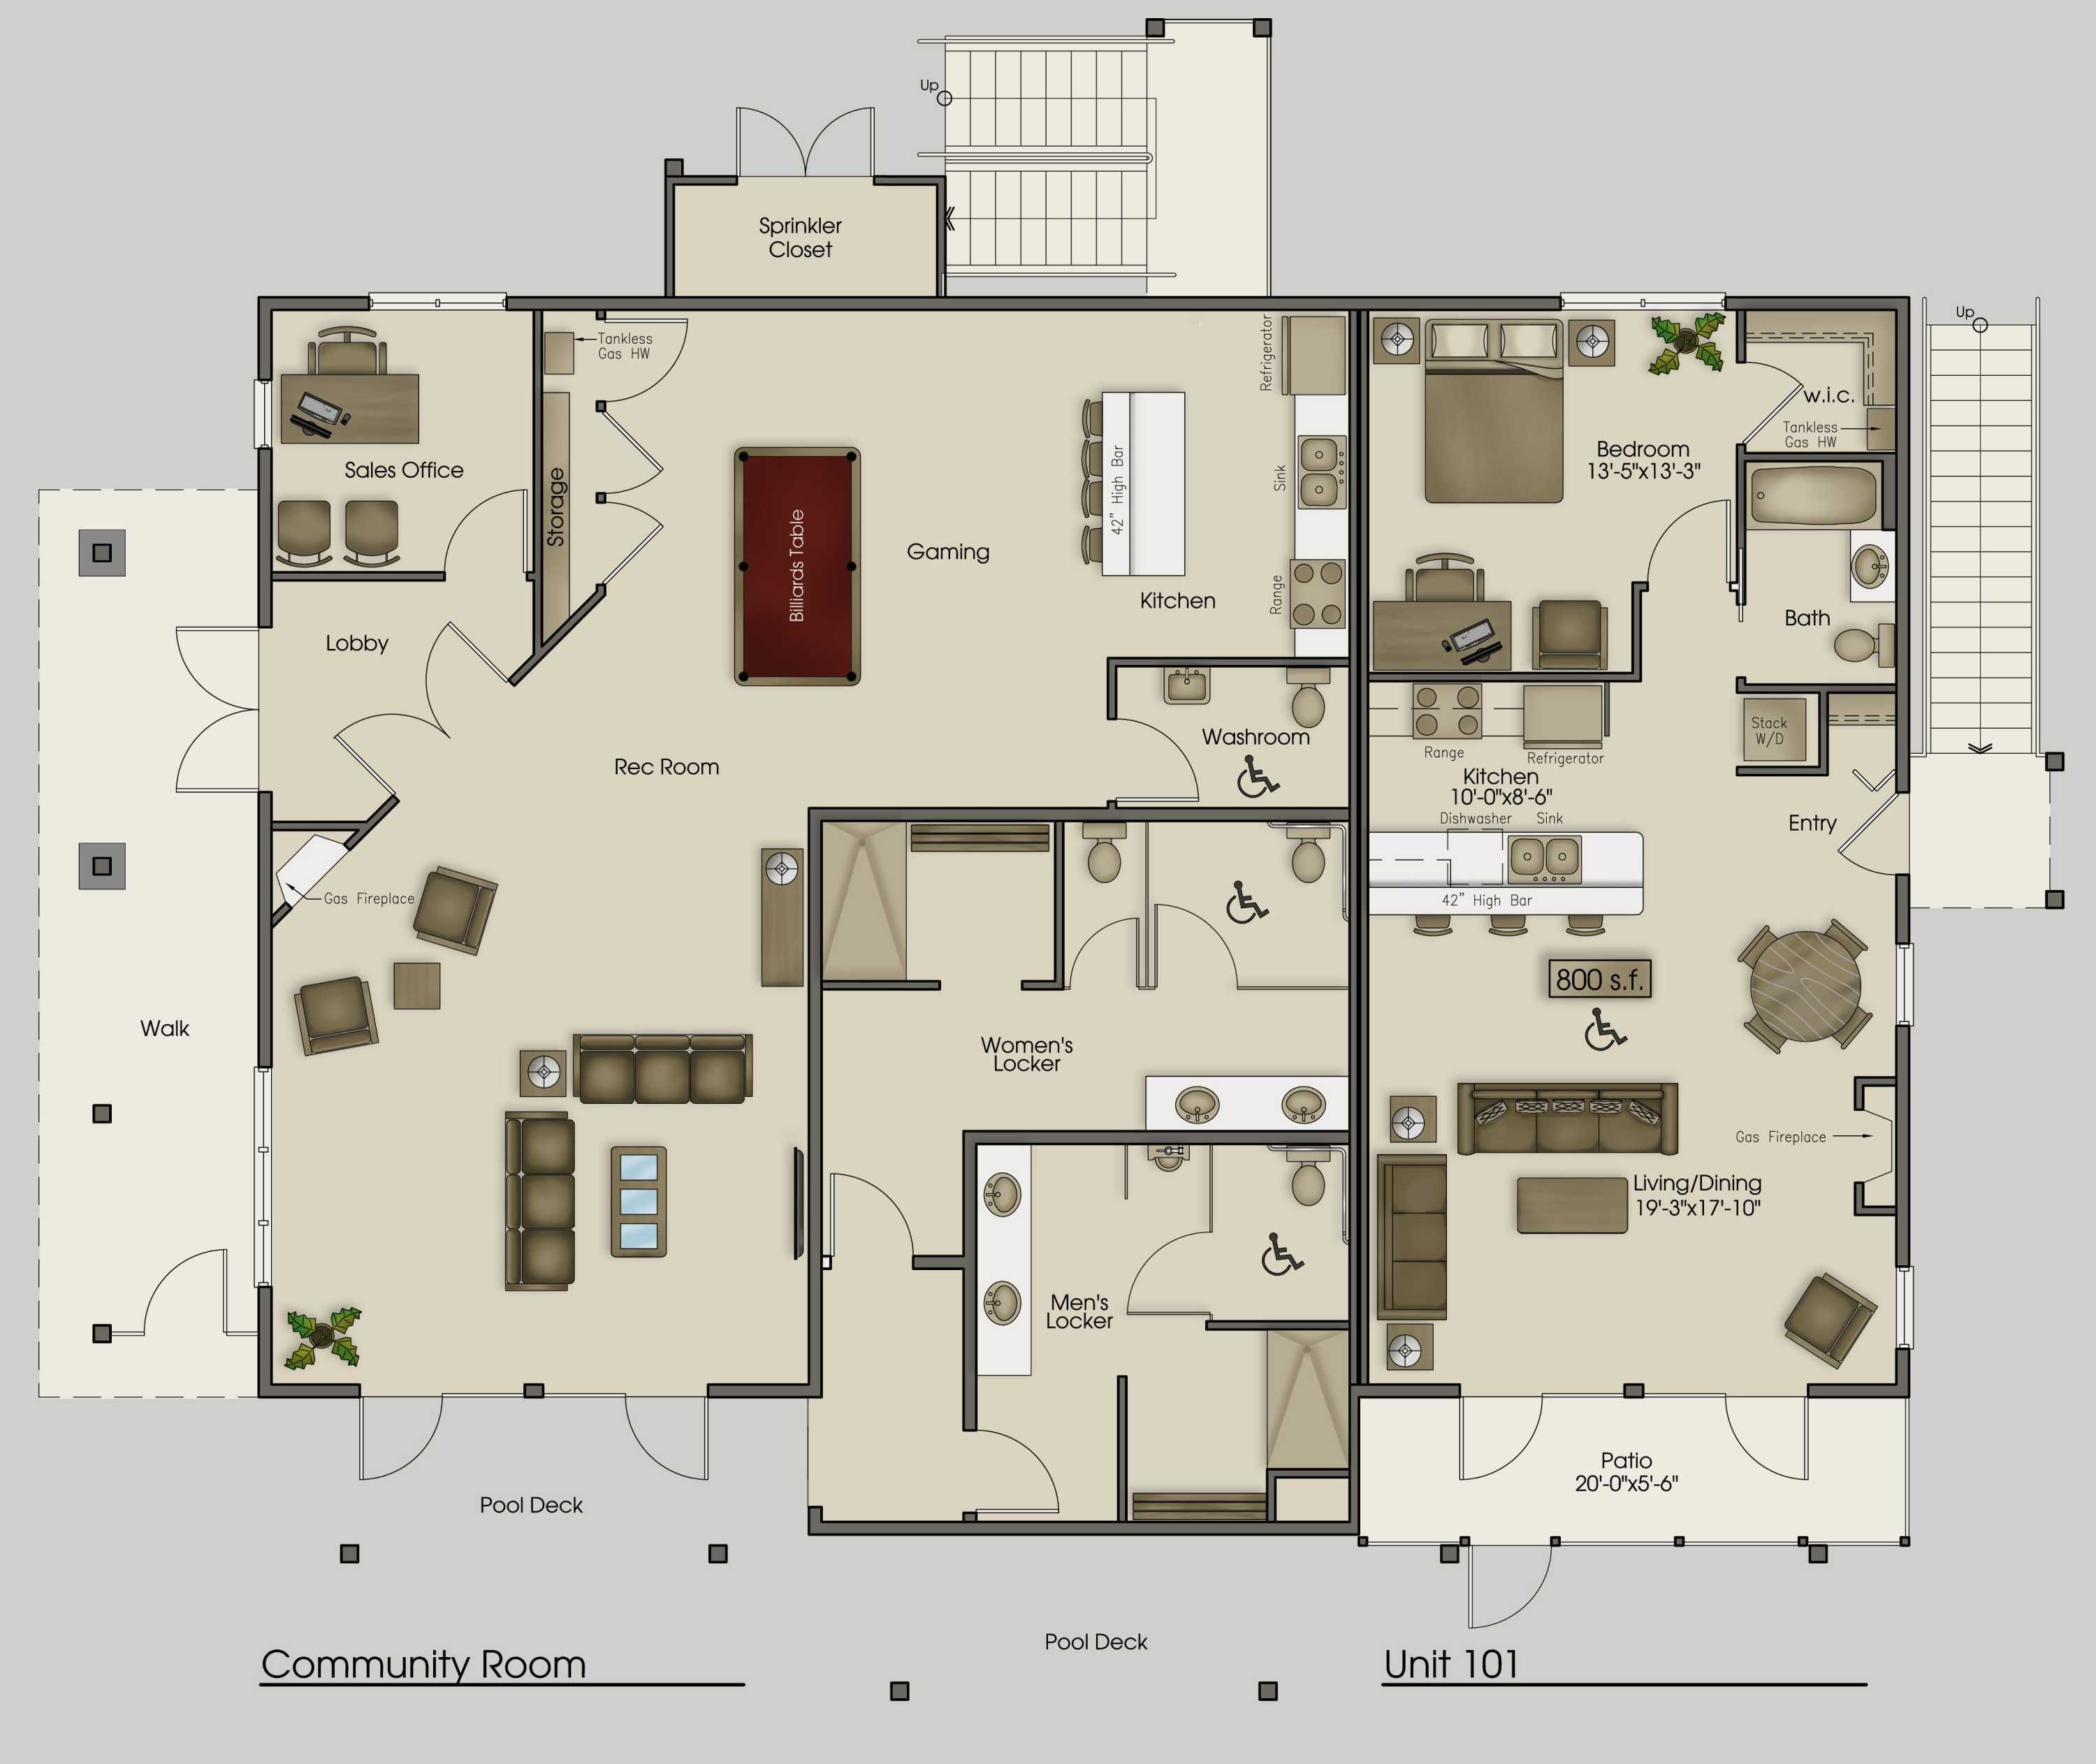 Mega villa plans clubhouse plan pictures apartments sample Best kitchen layout plans